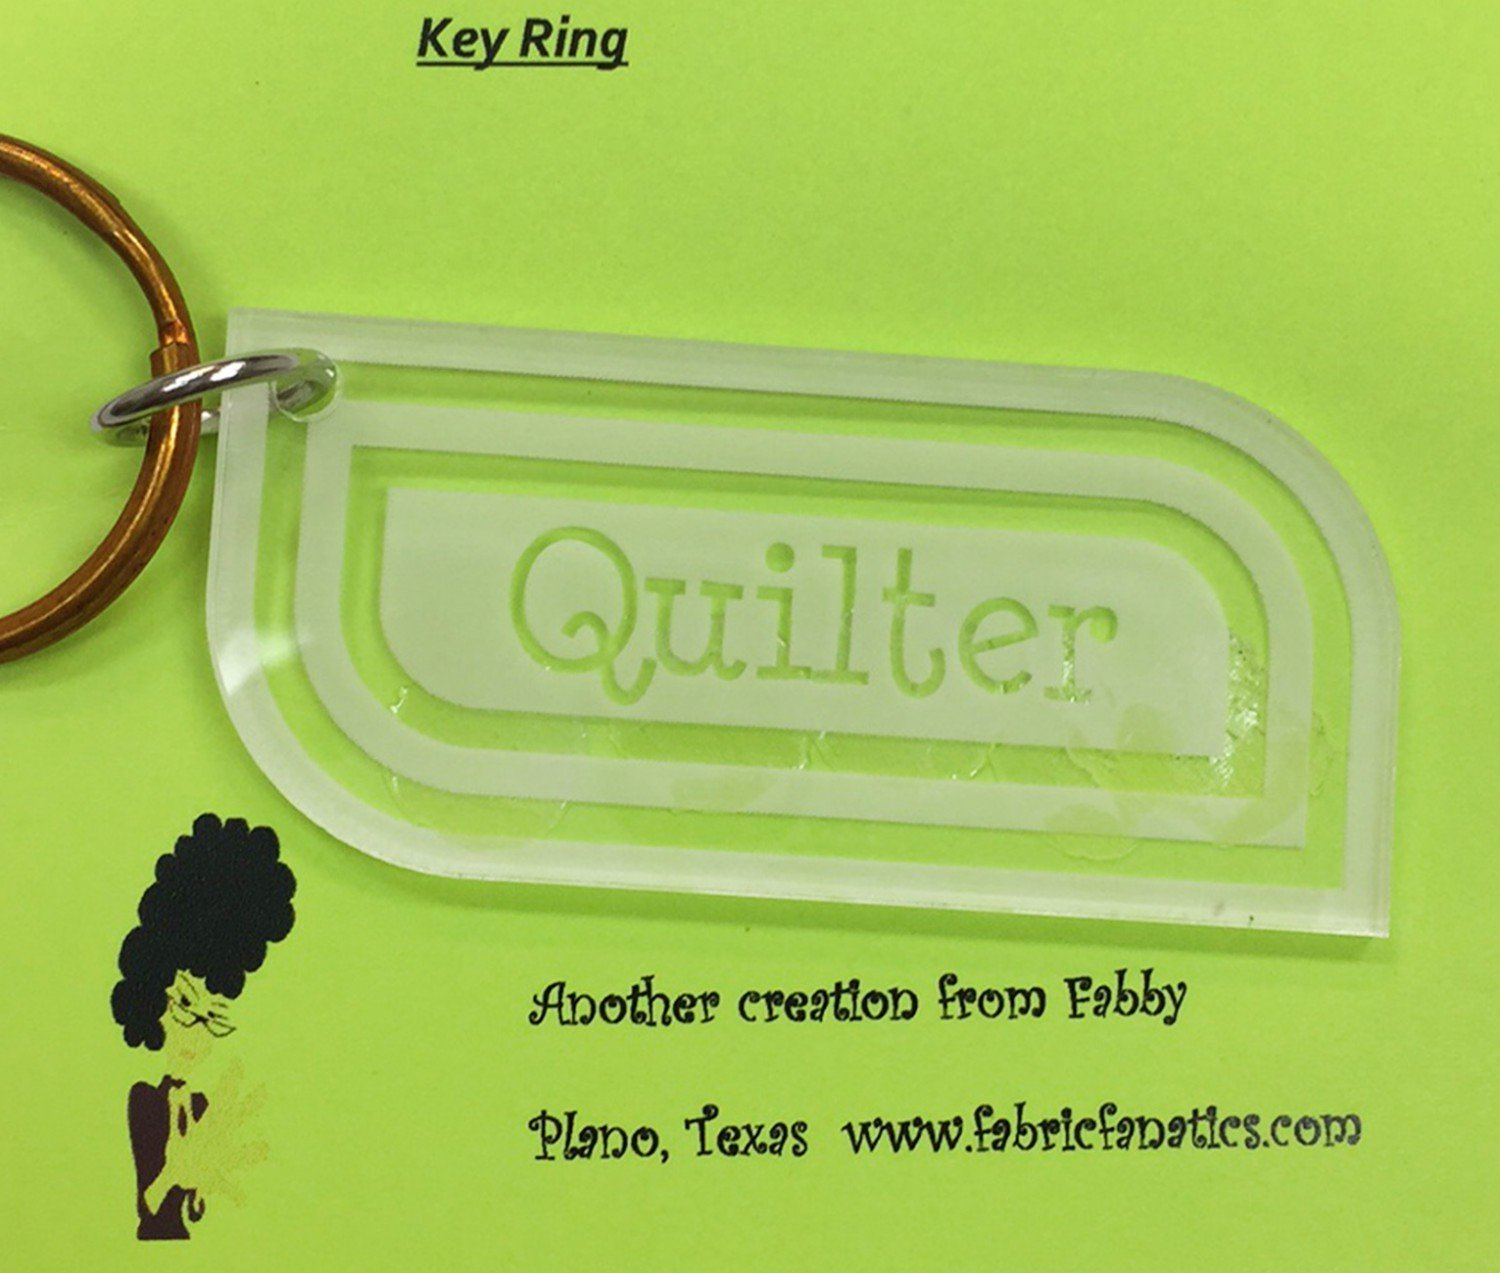 Acrylic Keyring - Quilter